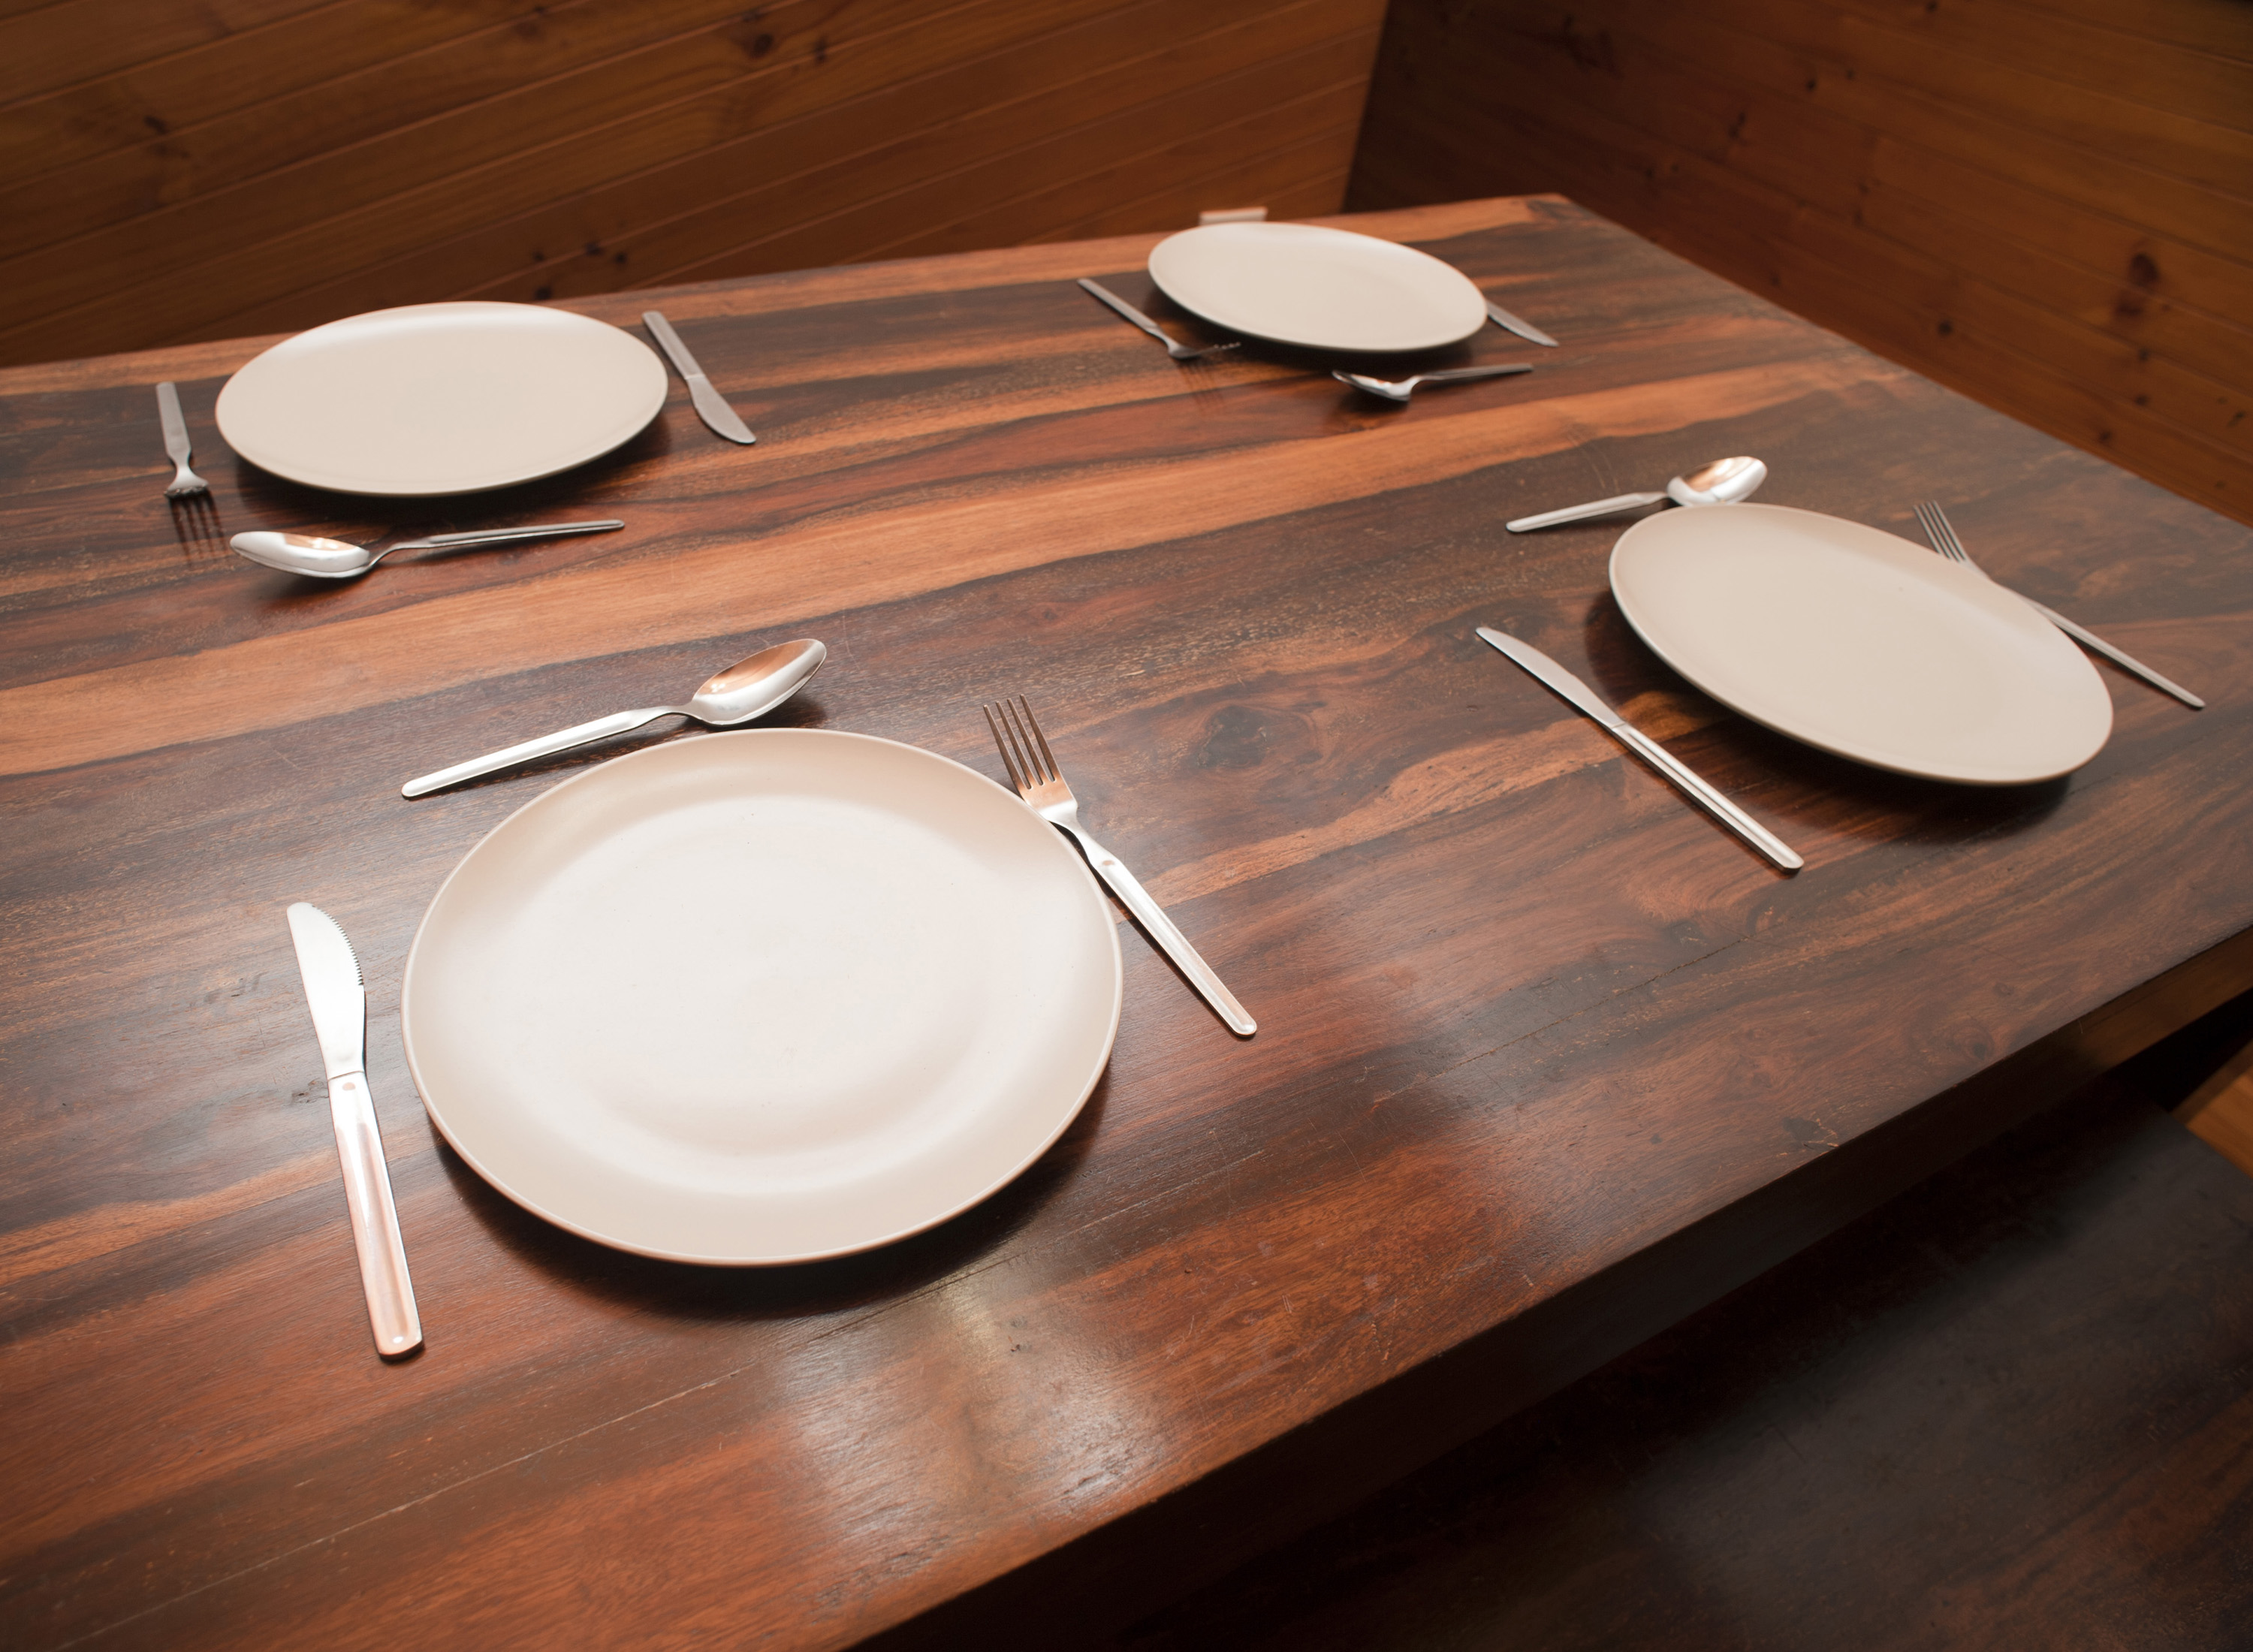 & Free image of Dinner table set with four place settings